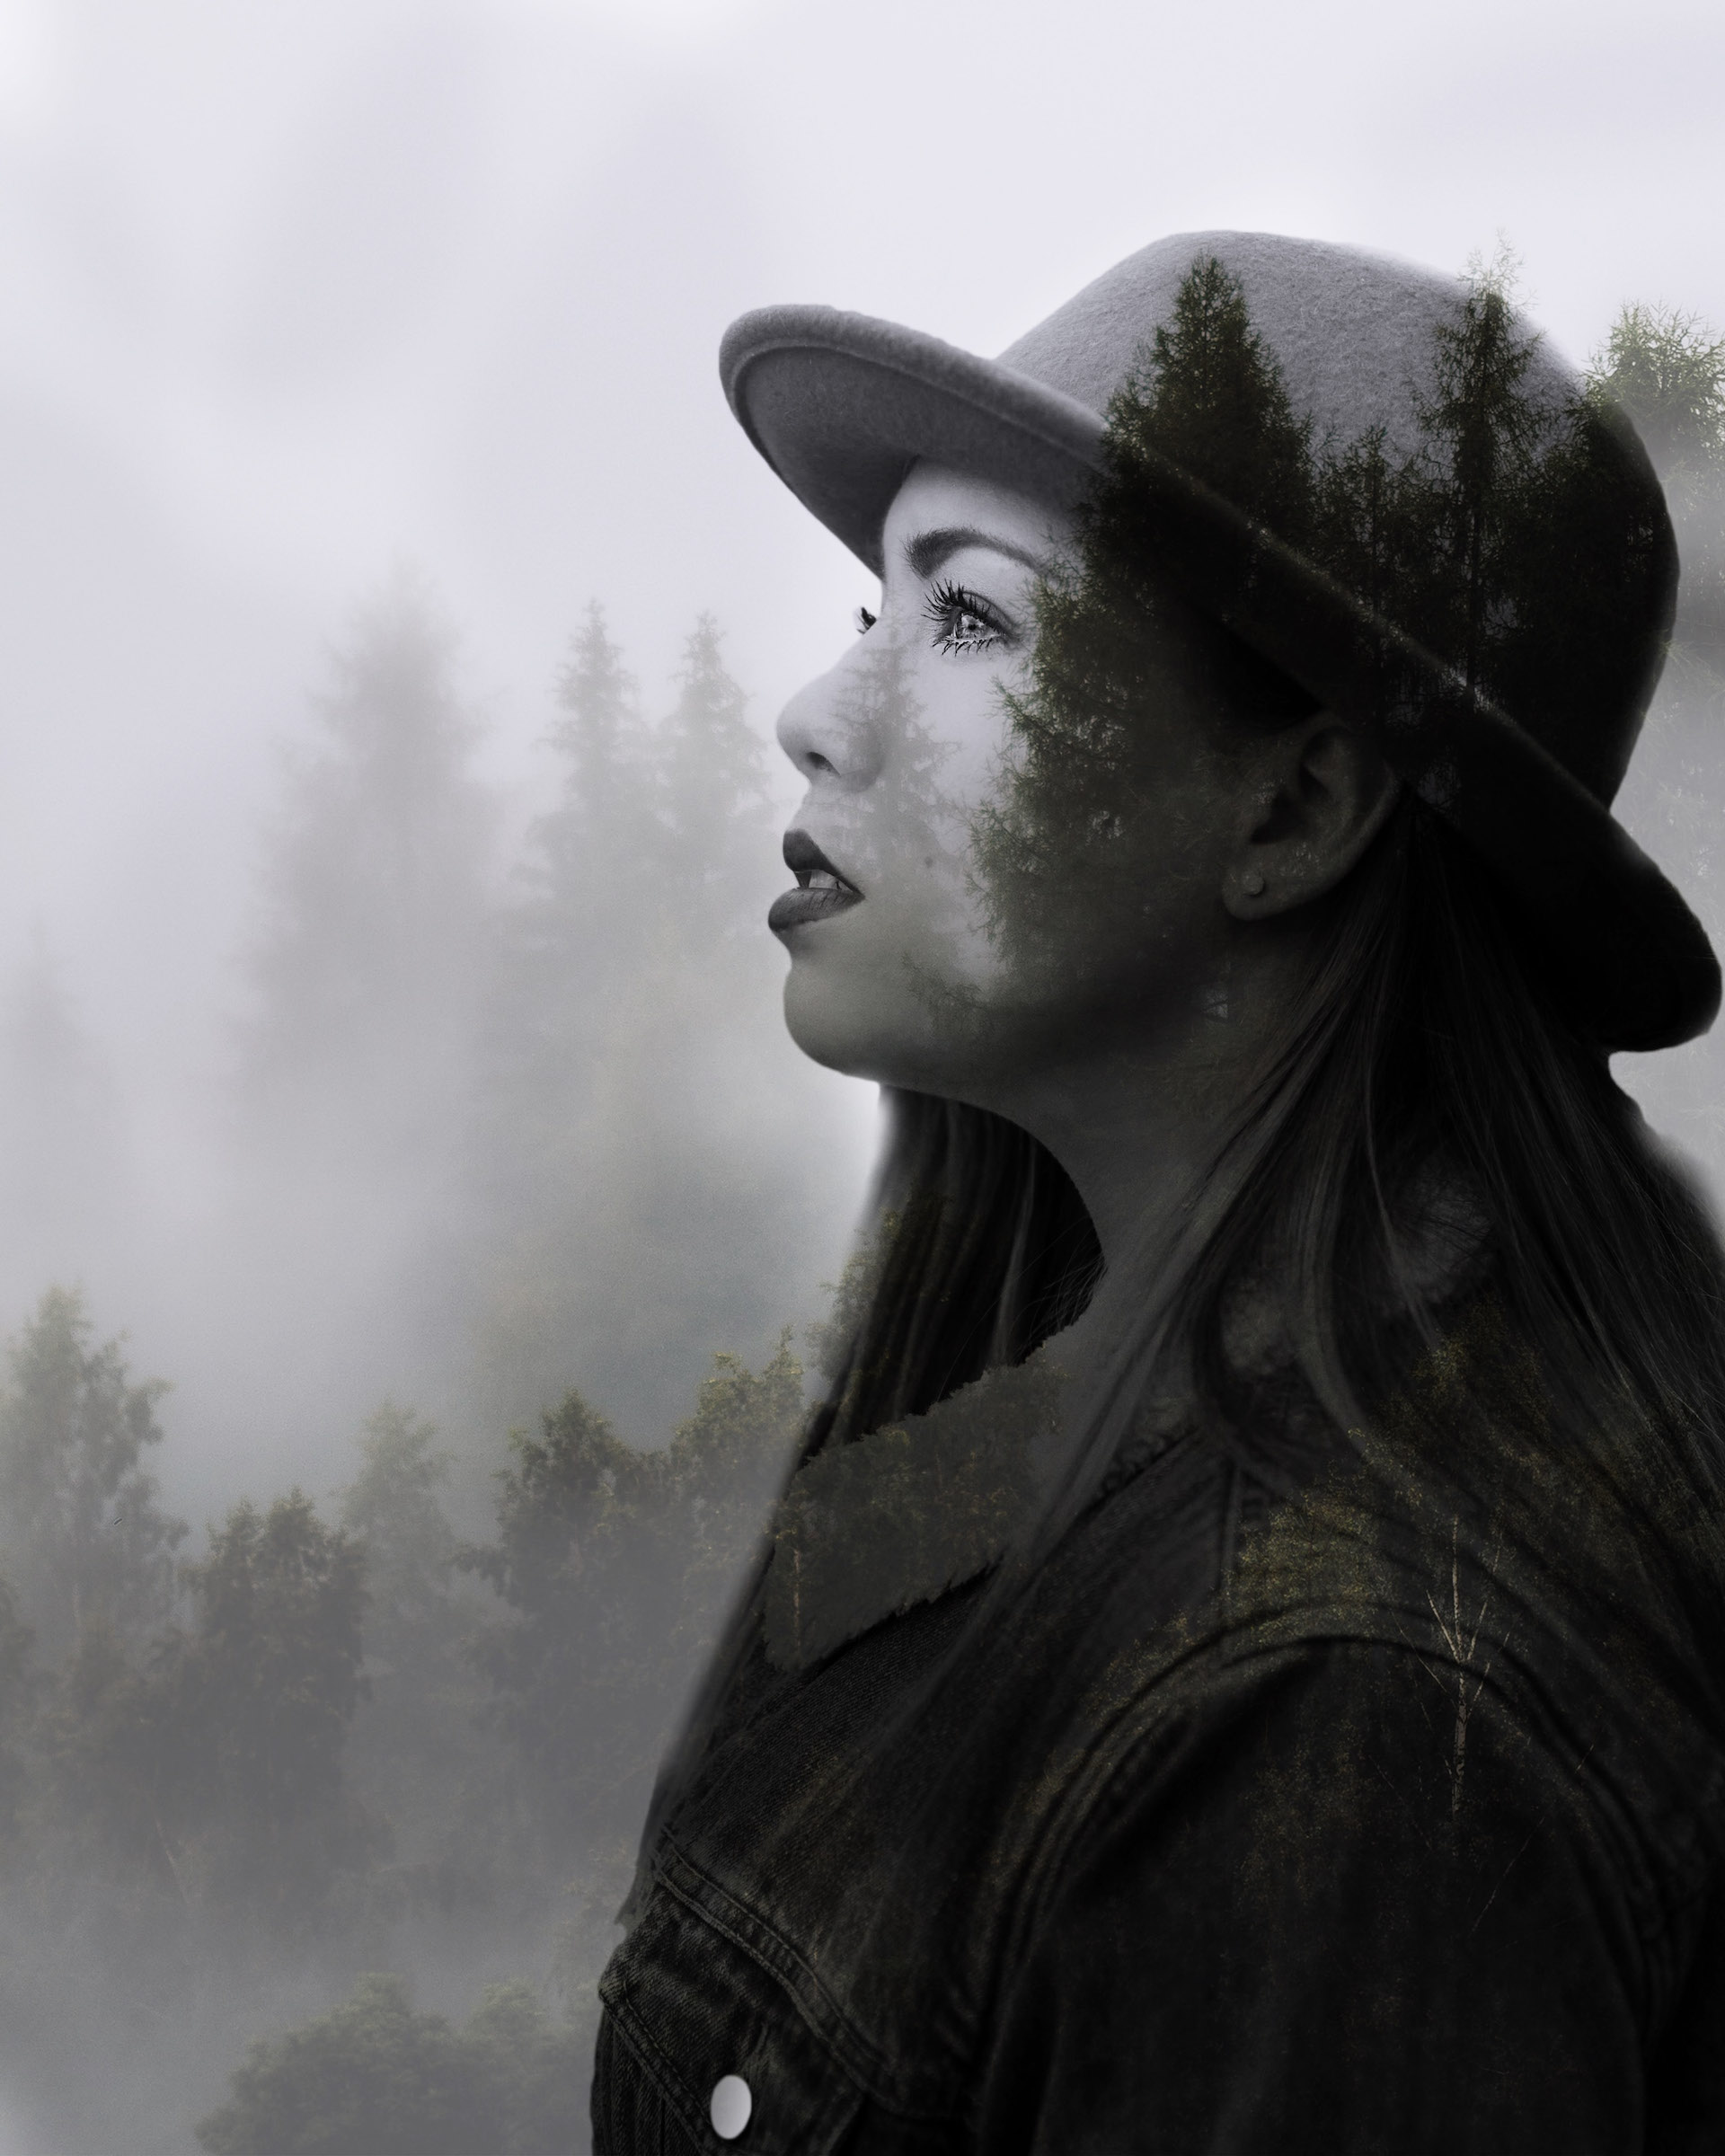 Woman in profile with a double exposure of pine trees